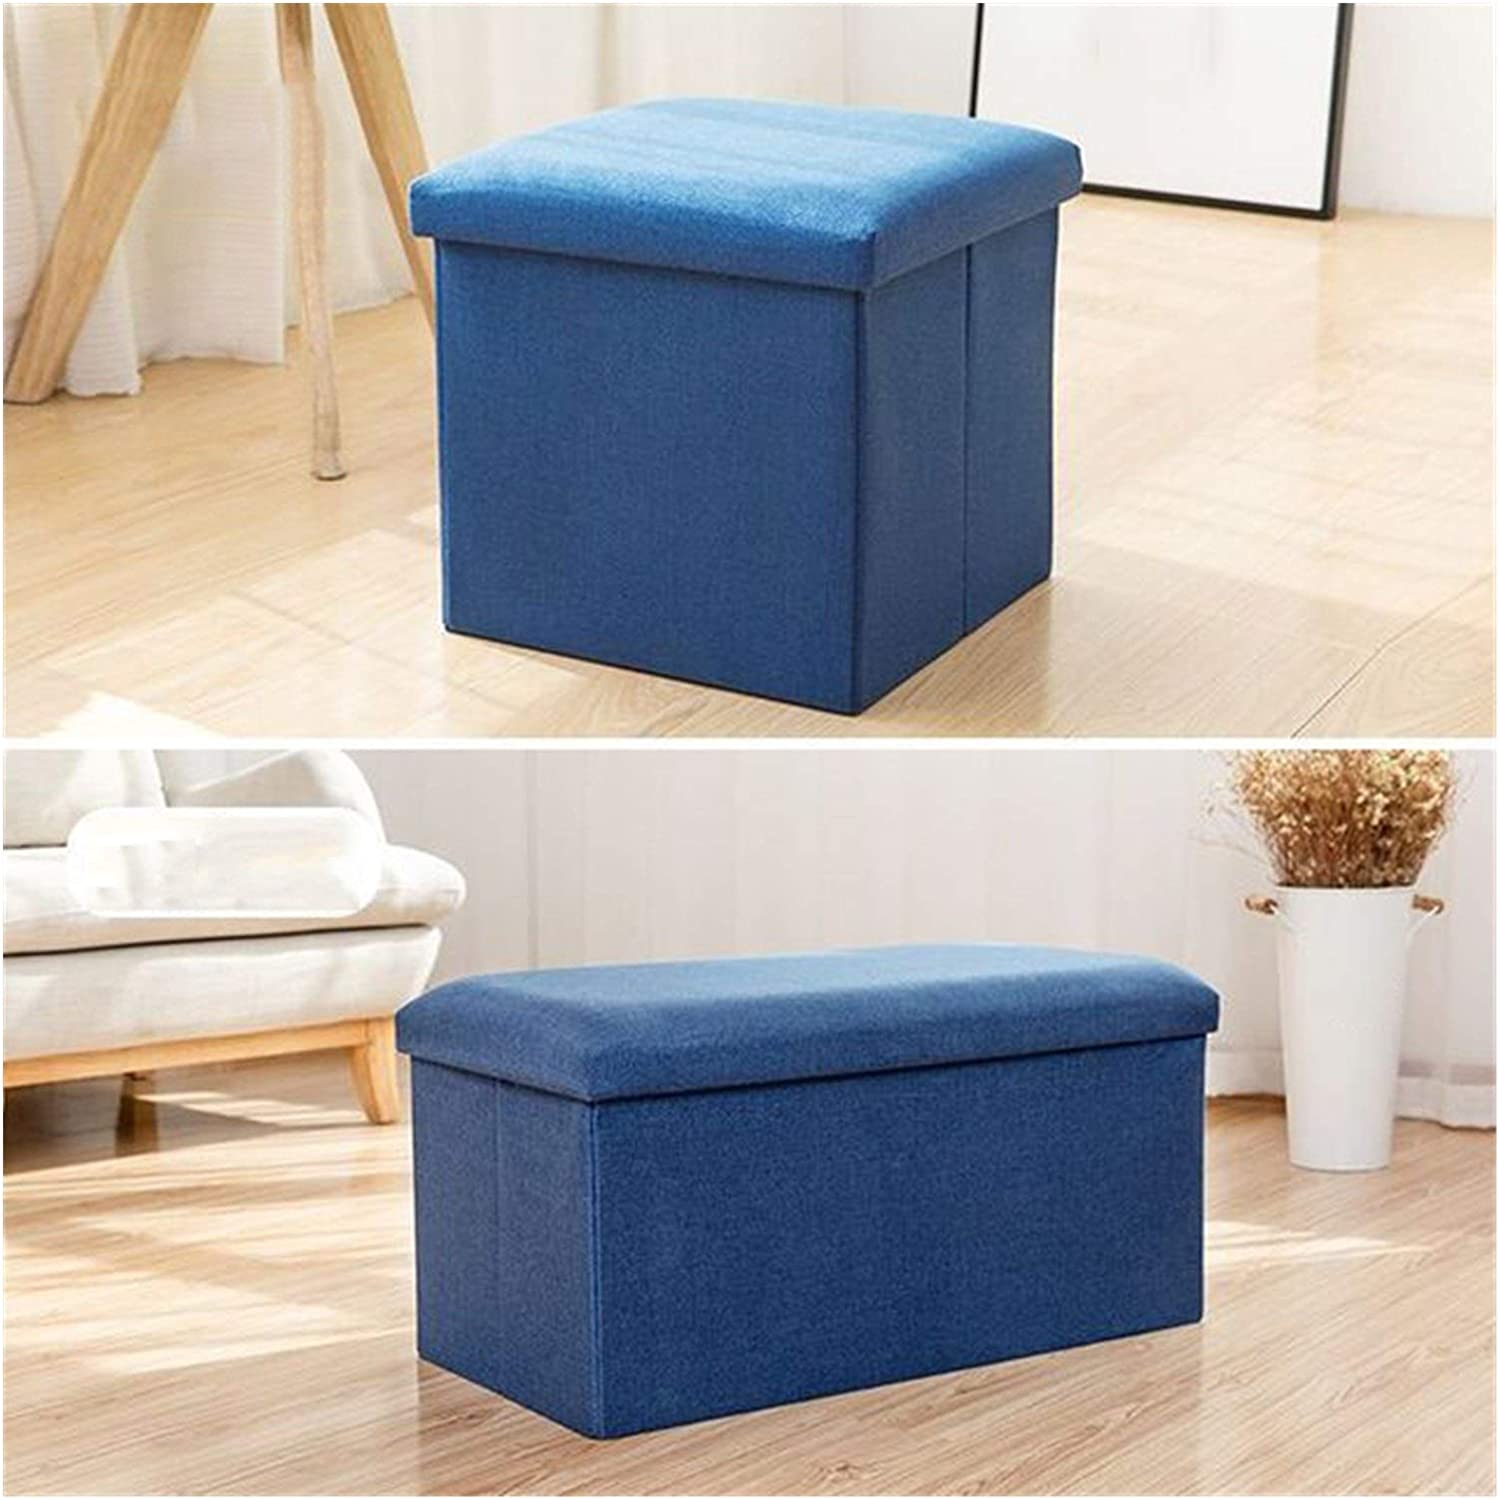 security ACD Max 59% OFF Folding Storage Stool Foldable w Portable Footstool